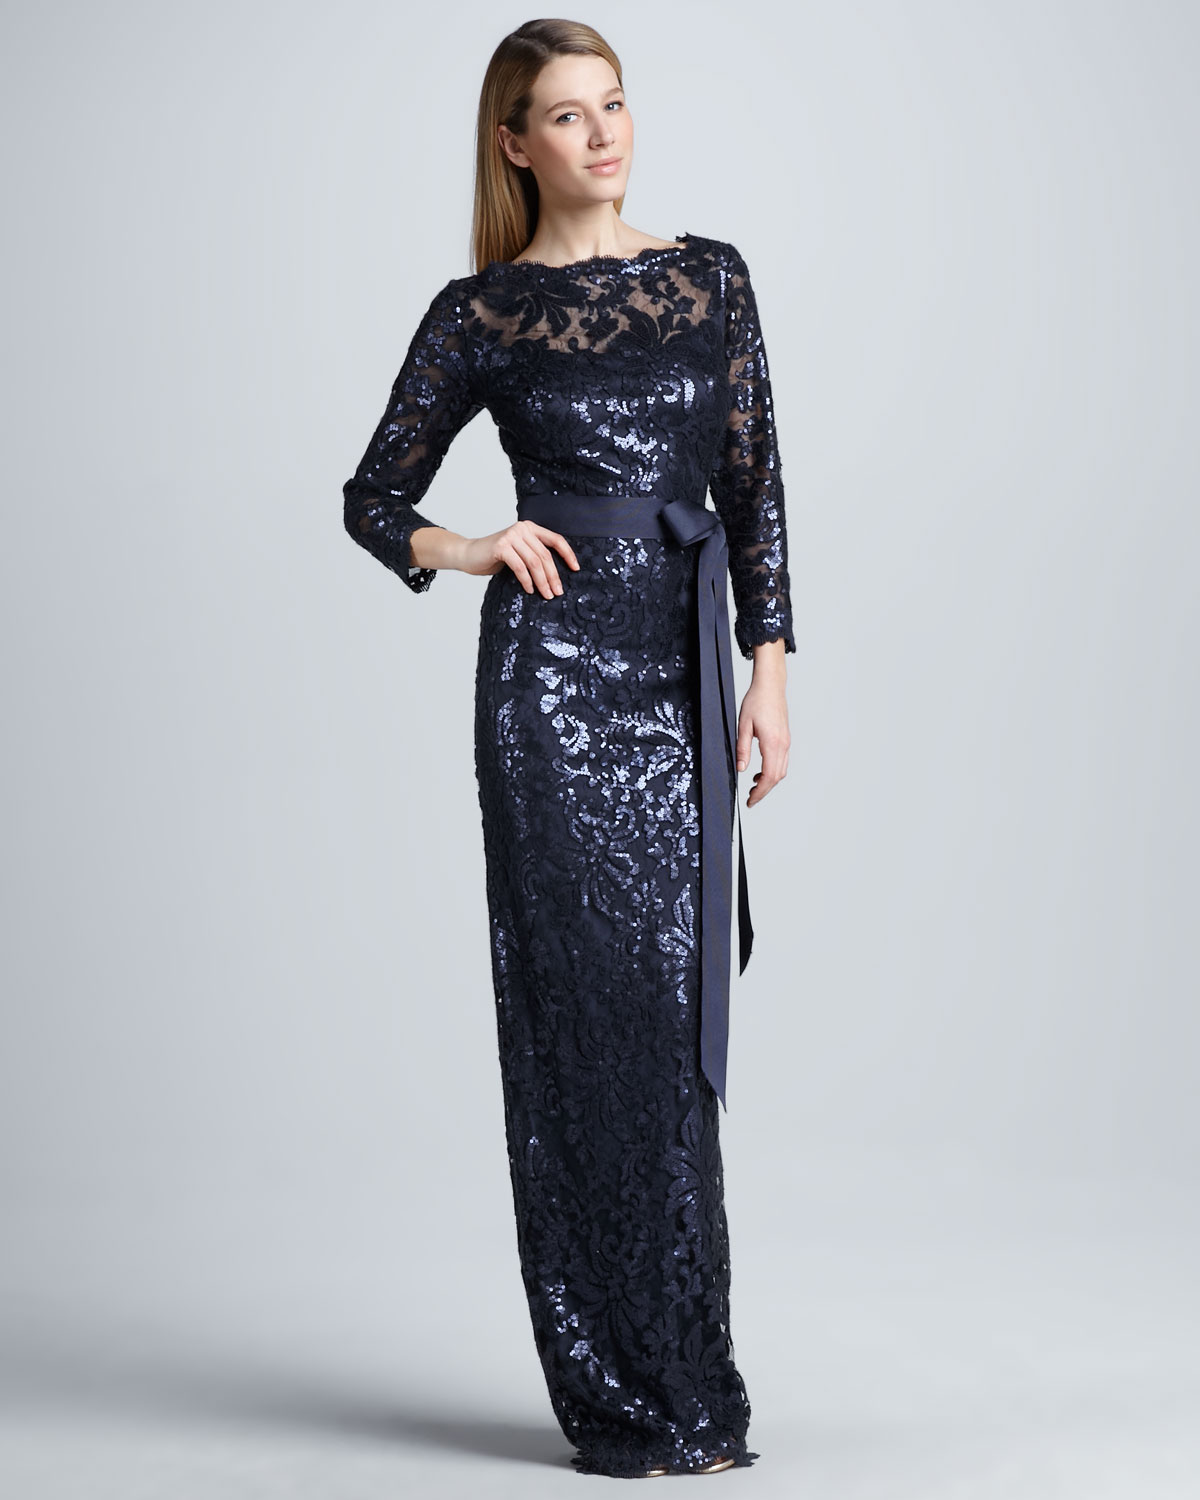 inos fashions we look forward to helping you choose your gown for an evening of a lifetime